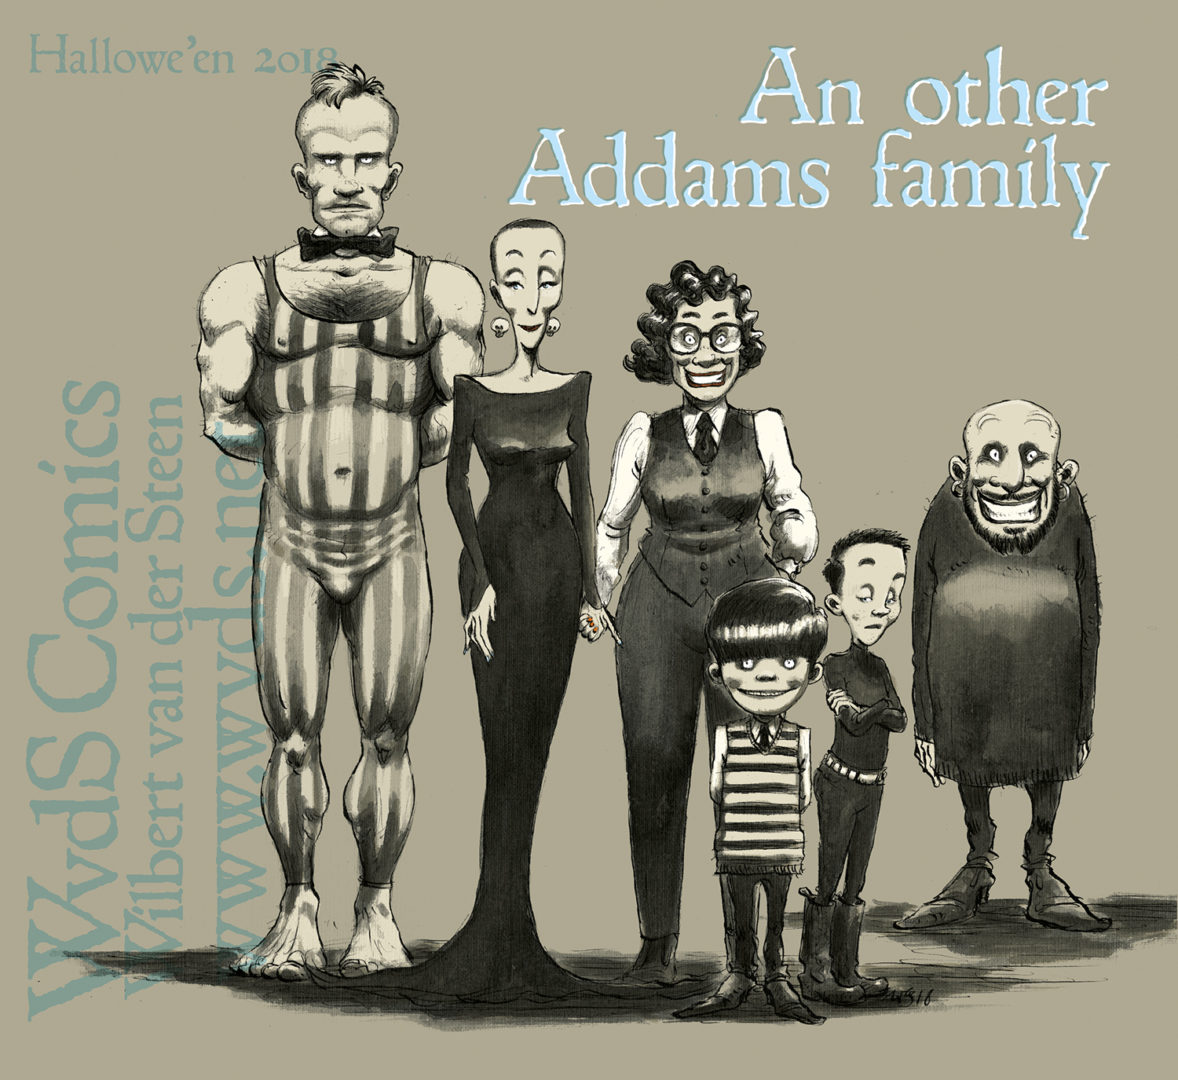 An other Addams Family. Hallowe'en 2018